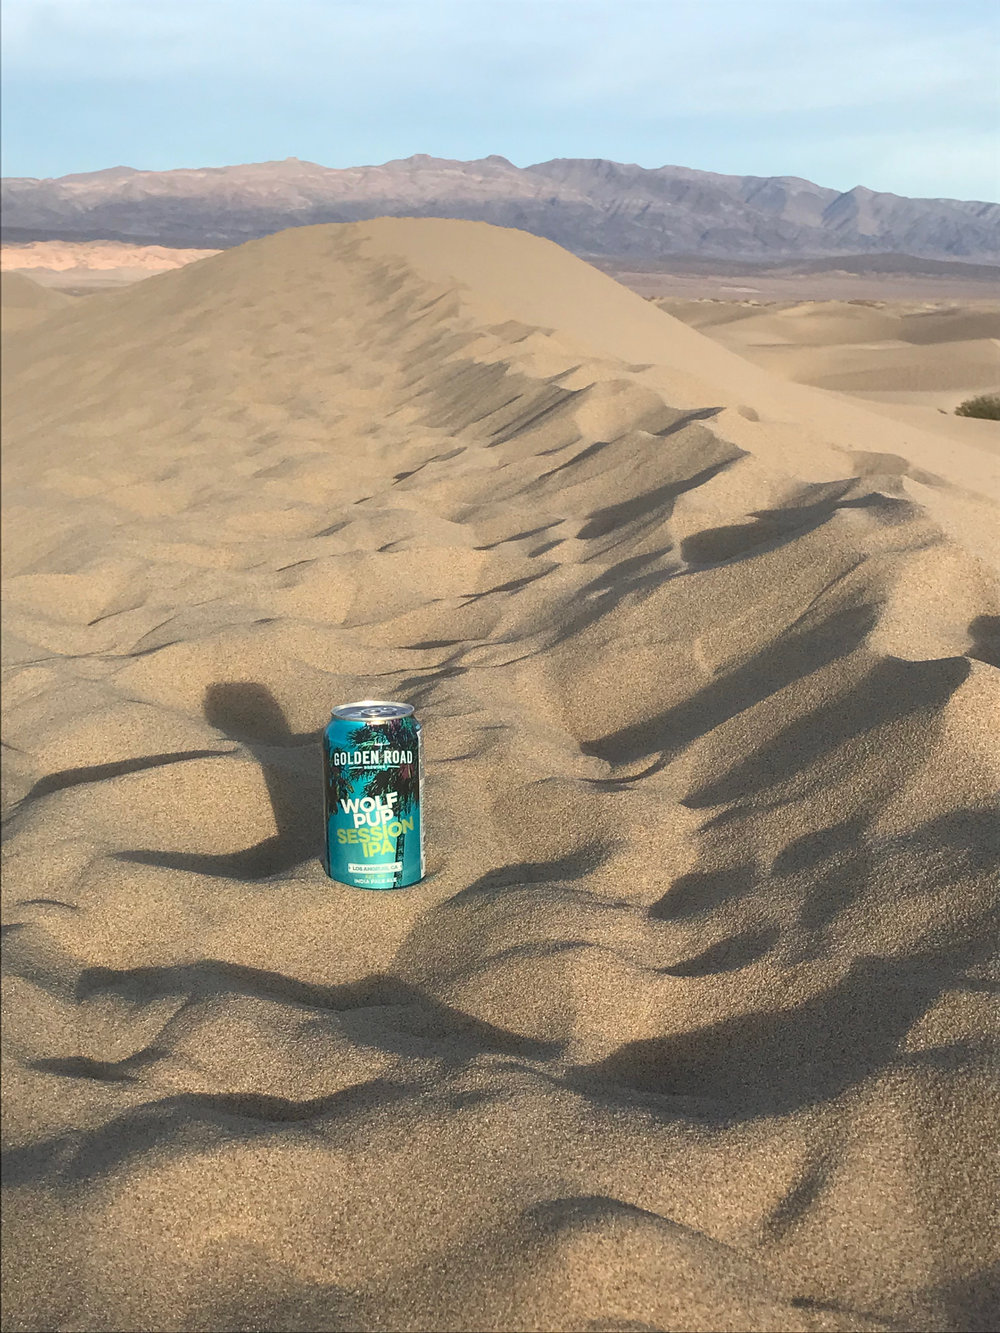 Sometimes a good IPA is worth the extra weight. Death Valley National Park.